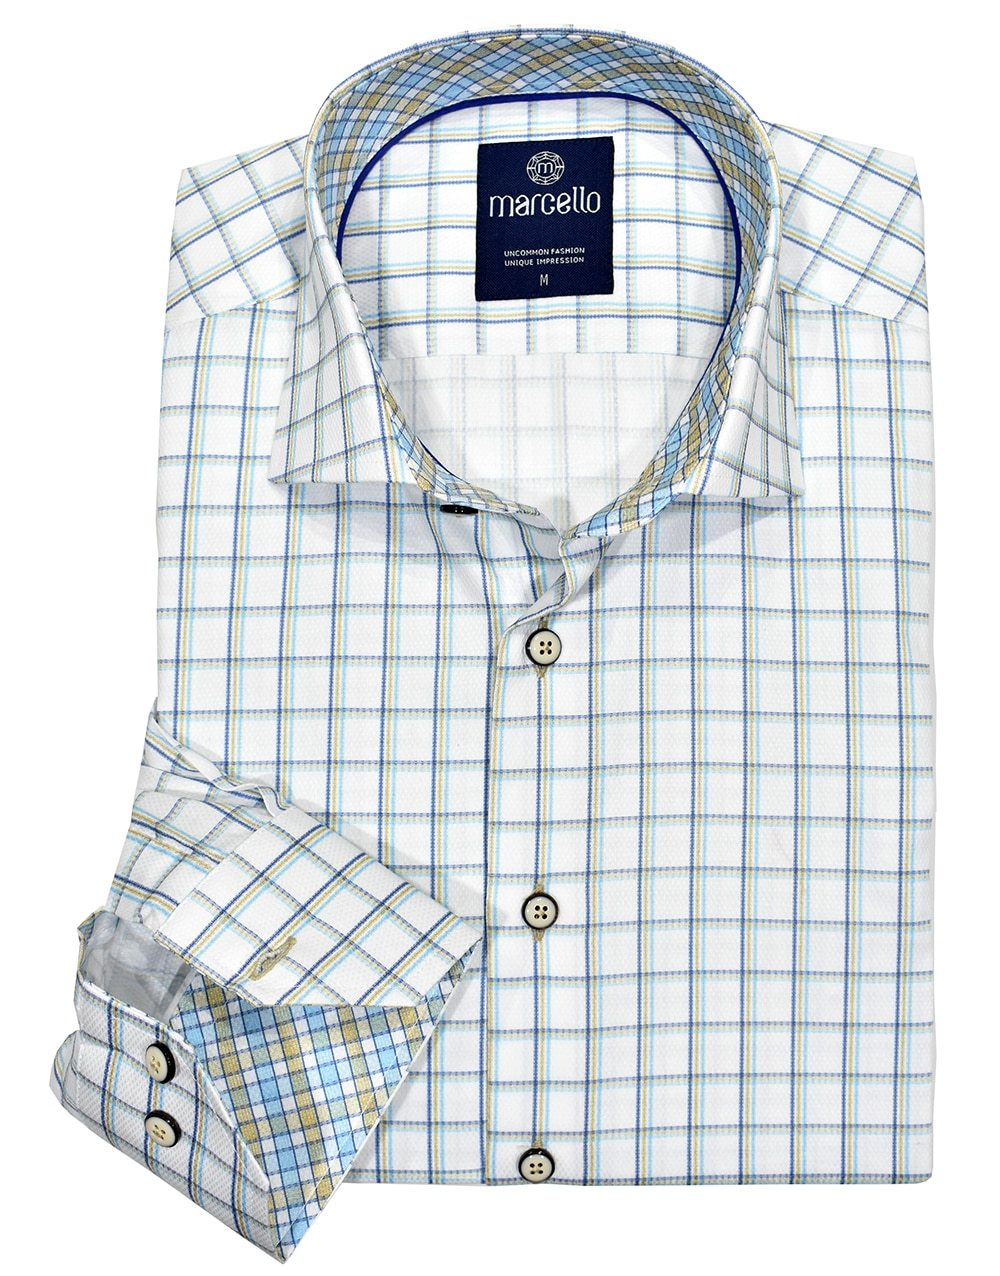 W1034 Mist Window Pane Shirt - Marcello Sport